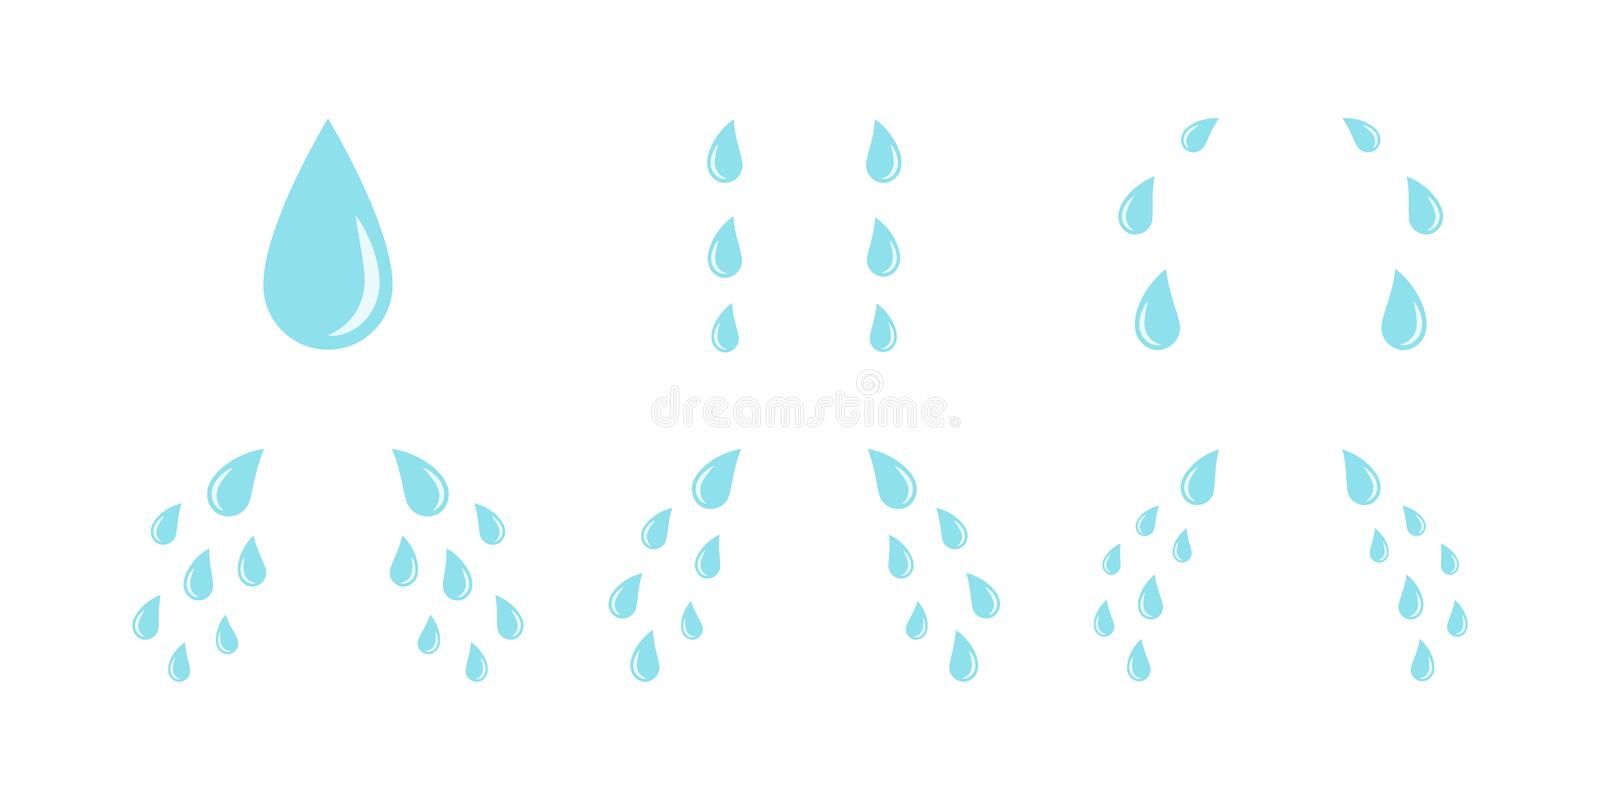 Cartoon cry tears. Droplets or teardrops symbols. Isolated on white background stock illustration